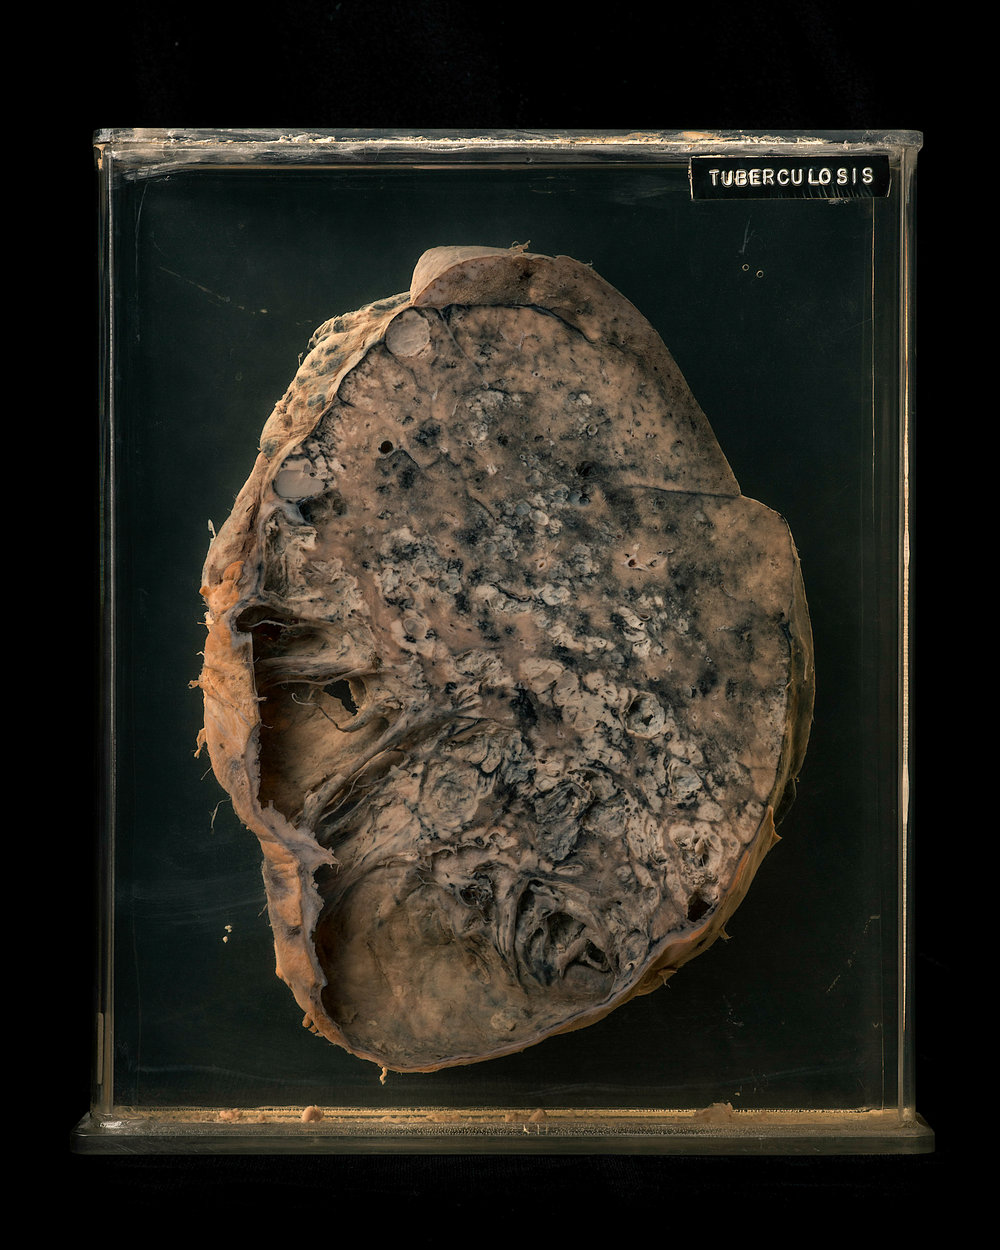 Cross section of TB infected lung - National Institute of Occupational Health 2016